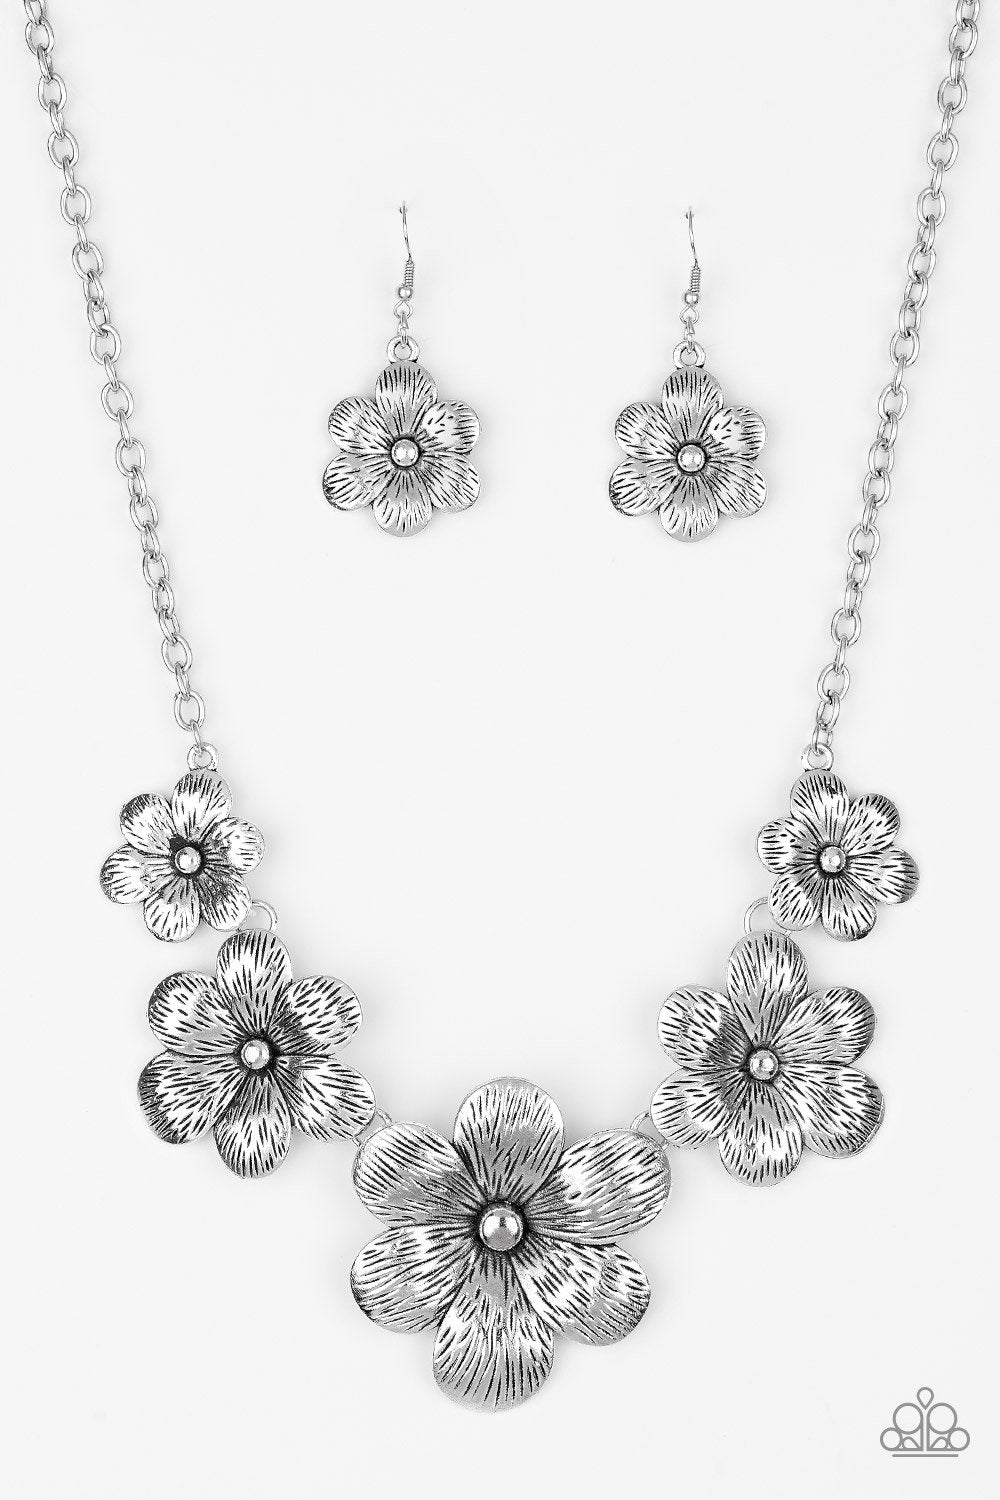 Paparazzi Necklace ~Secret Garden - Silver